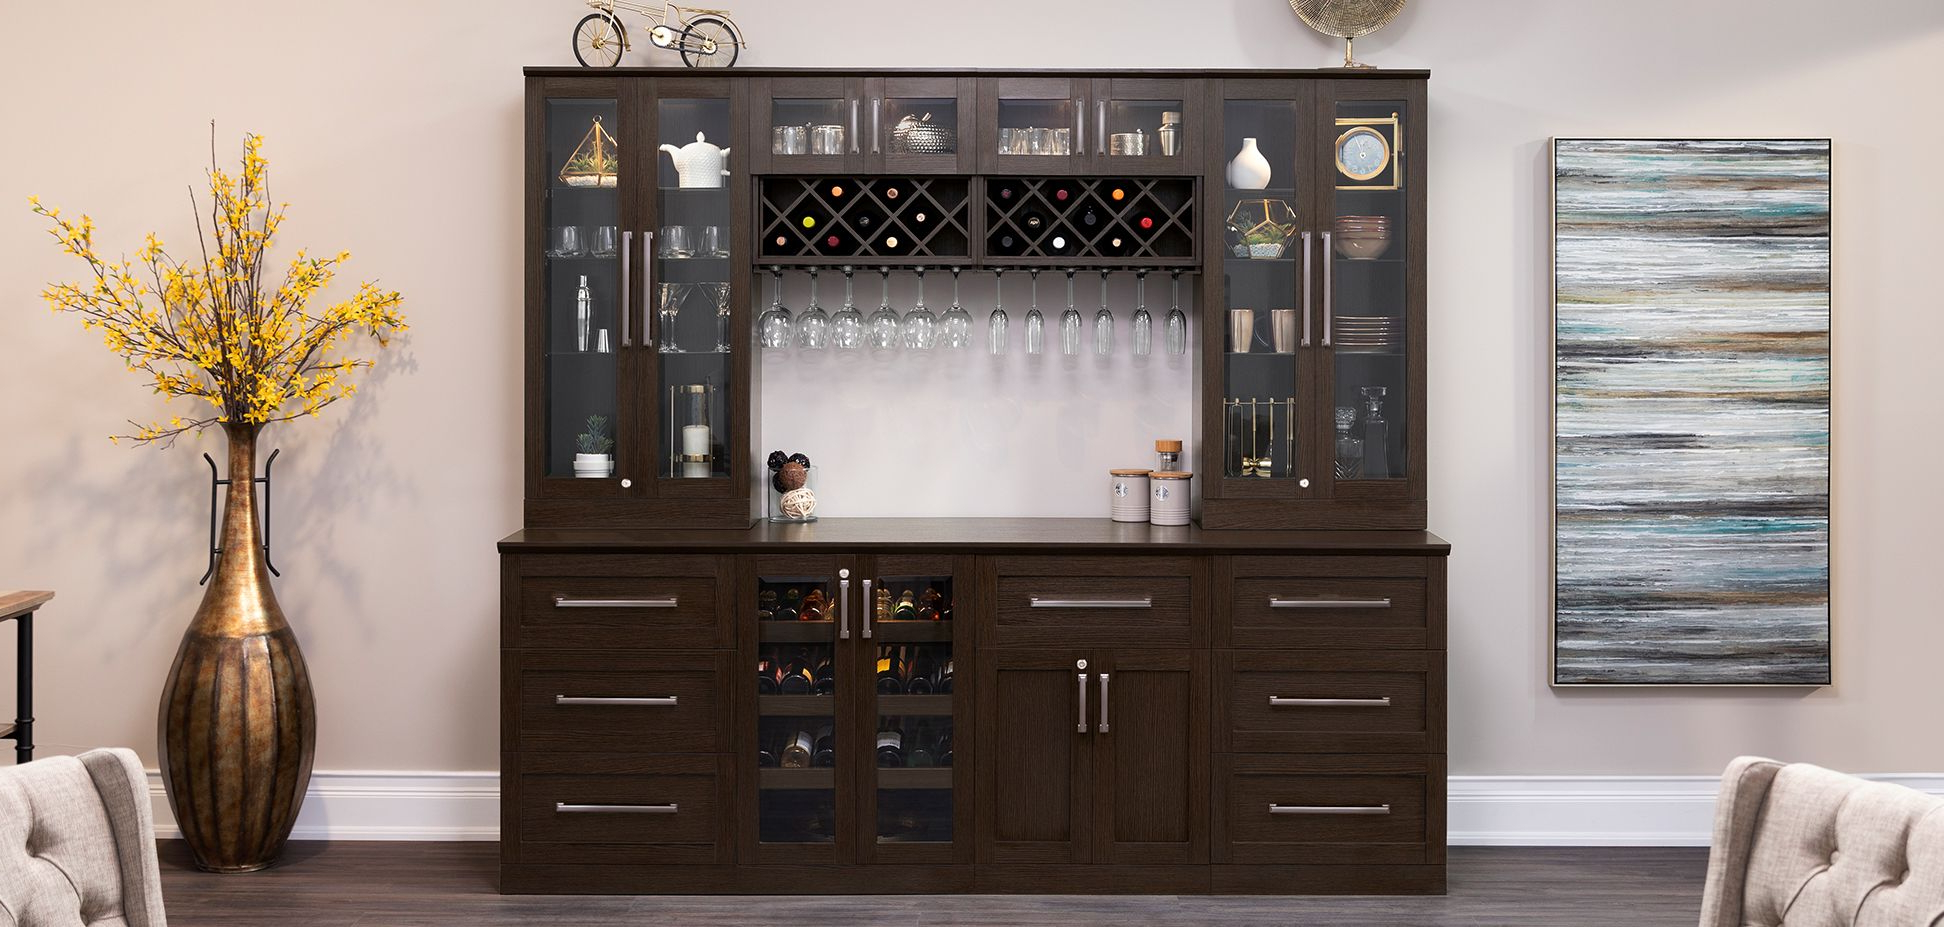 Home Wine Bar 9 Piece Cabinetry Setnewage Products Throughout Abhinav Credenzas (View 20 of 20)